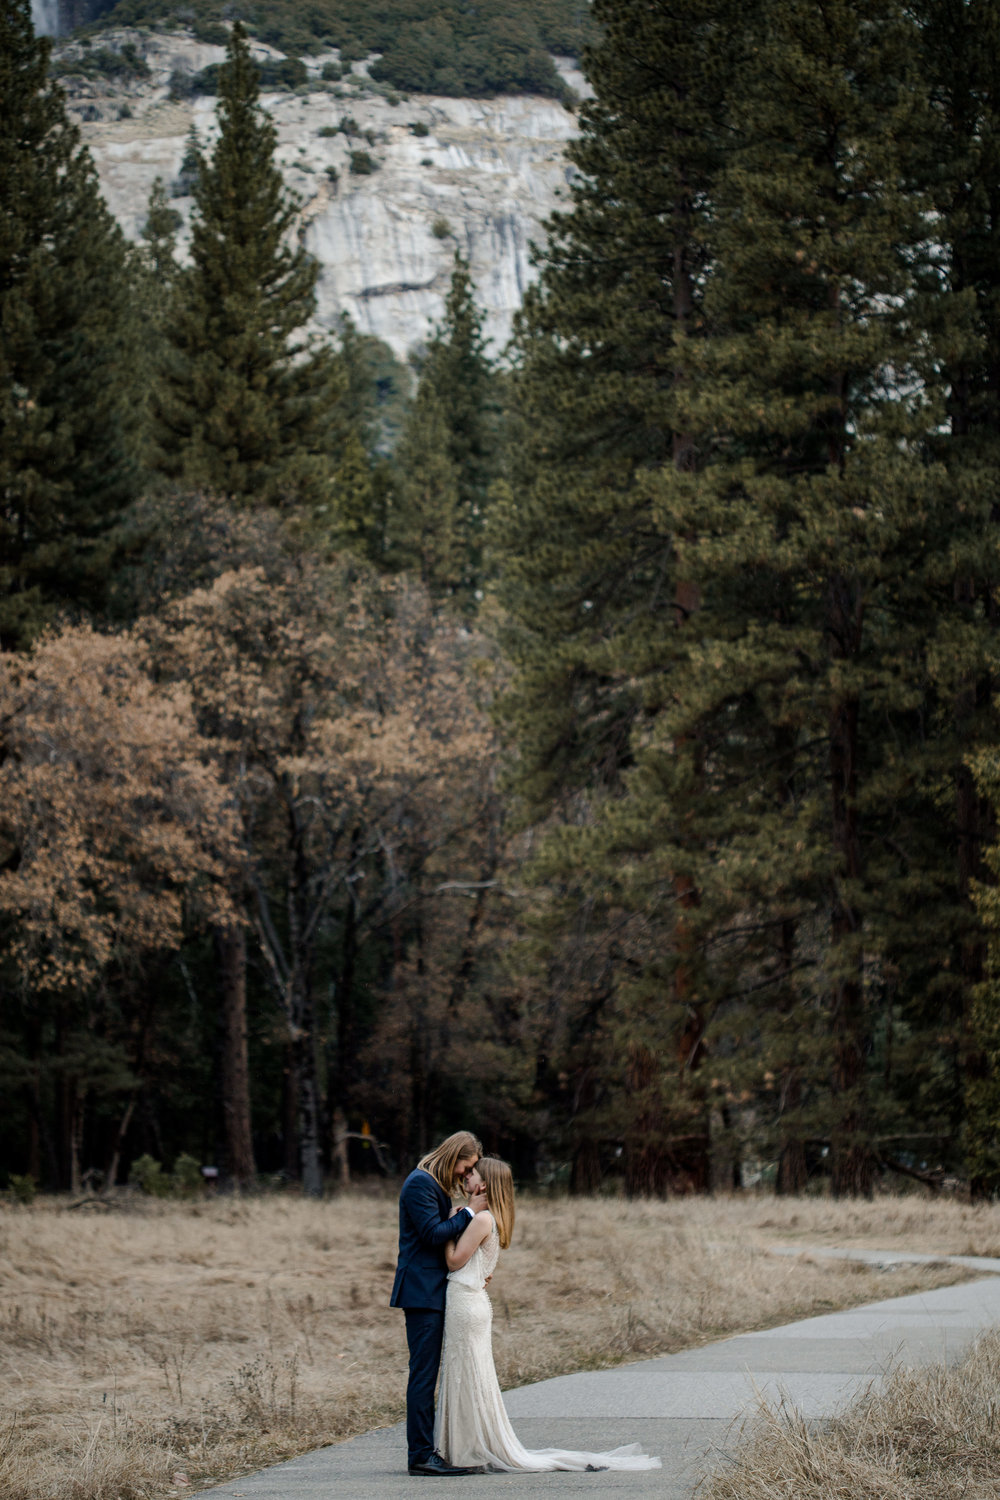 nicole-daacke-photography-yousemite-national-park-elopement-photographer-winter-cloud-moody-elope-inspiration-yosemite-valley-tunnel-view-winter-cloud-fog-weather-wedding-photos-24.jpg